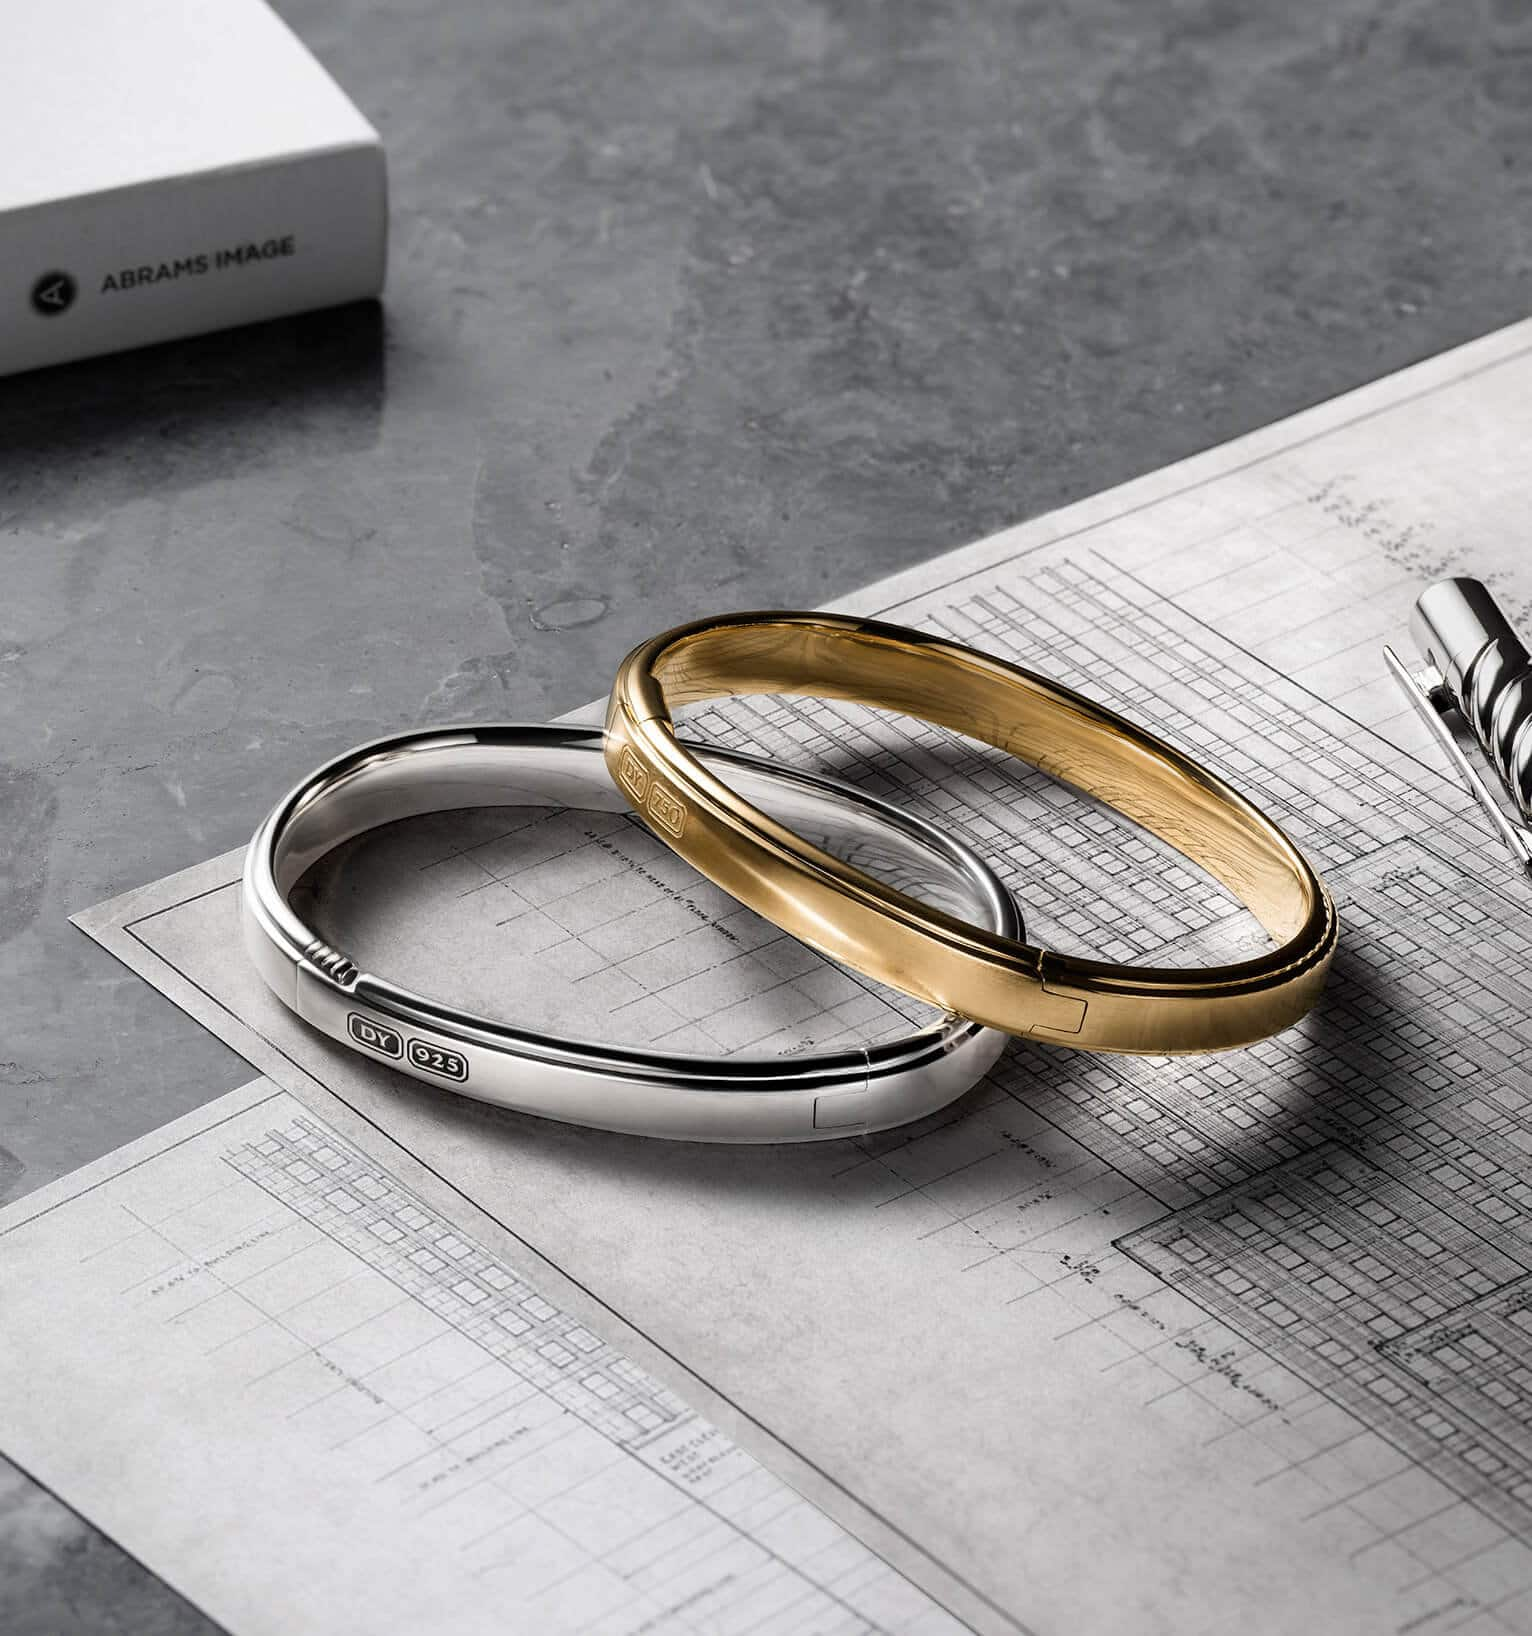 A color photo shows two David Yurman men's cuff bracelets atop architectural blueprints scattered on a grey marble surface. One bracelet is crafted from sterling silver while the other is crafted from 18K yellow gold. A grey book and a sterling silver David Yurman Cable pen surround the bracelets.